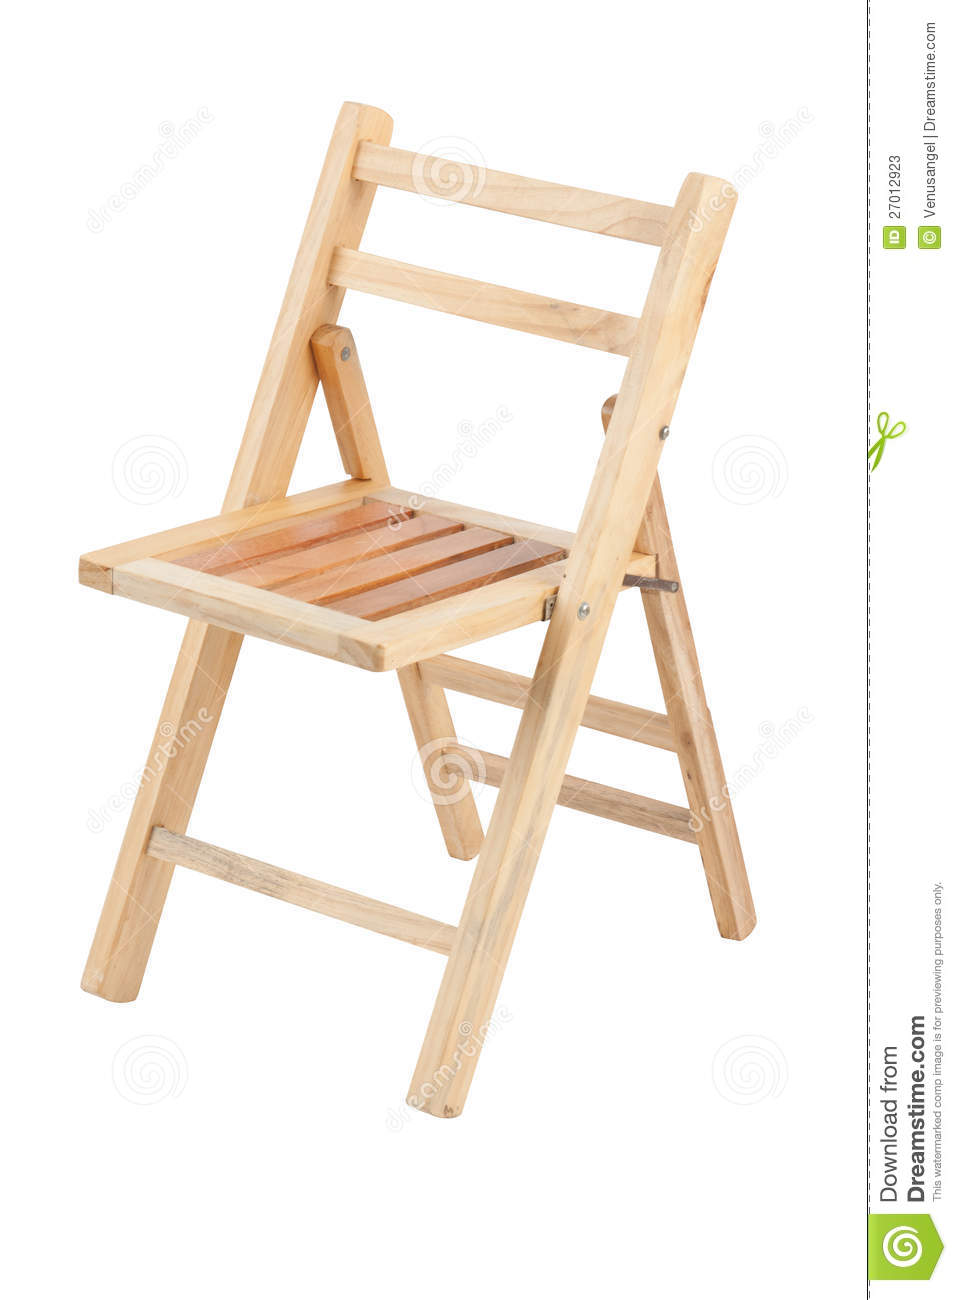 Small Folding Wooden Chair Stock s Image